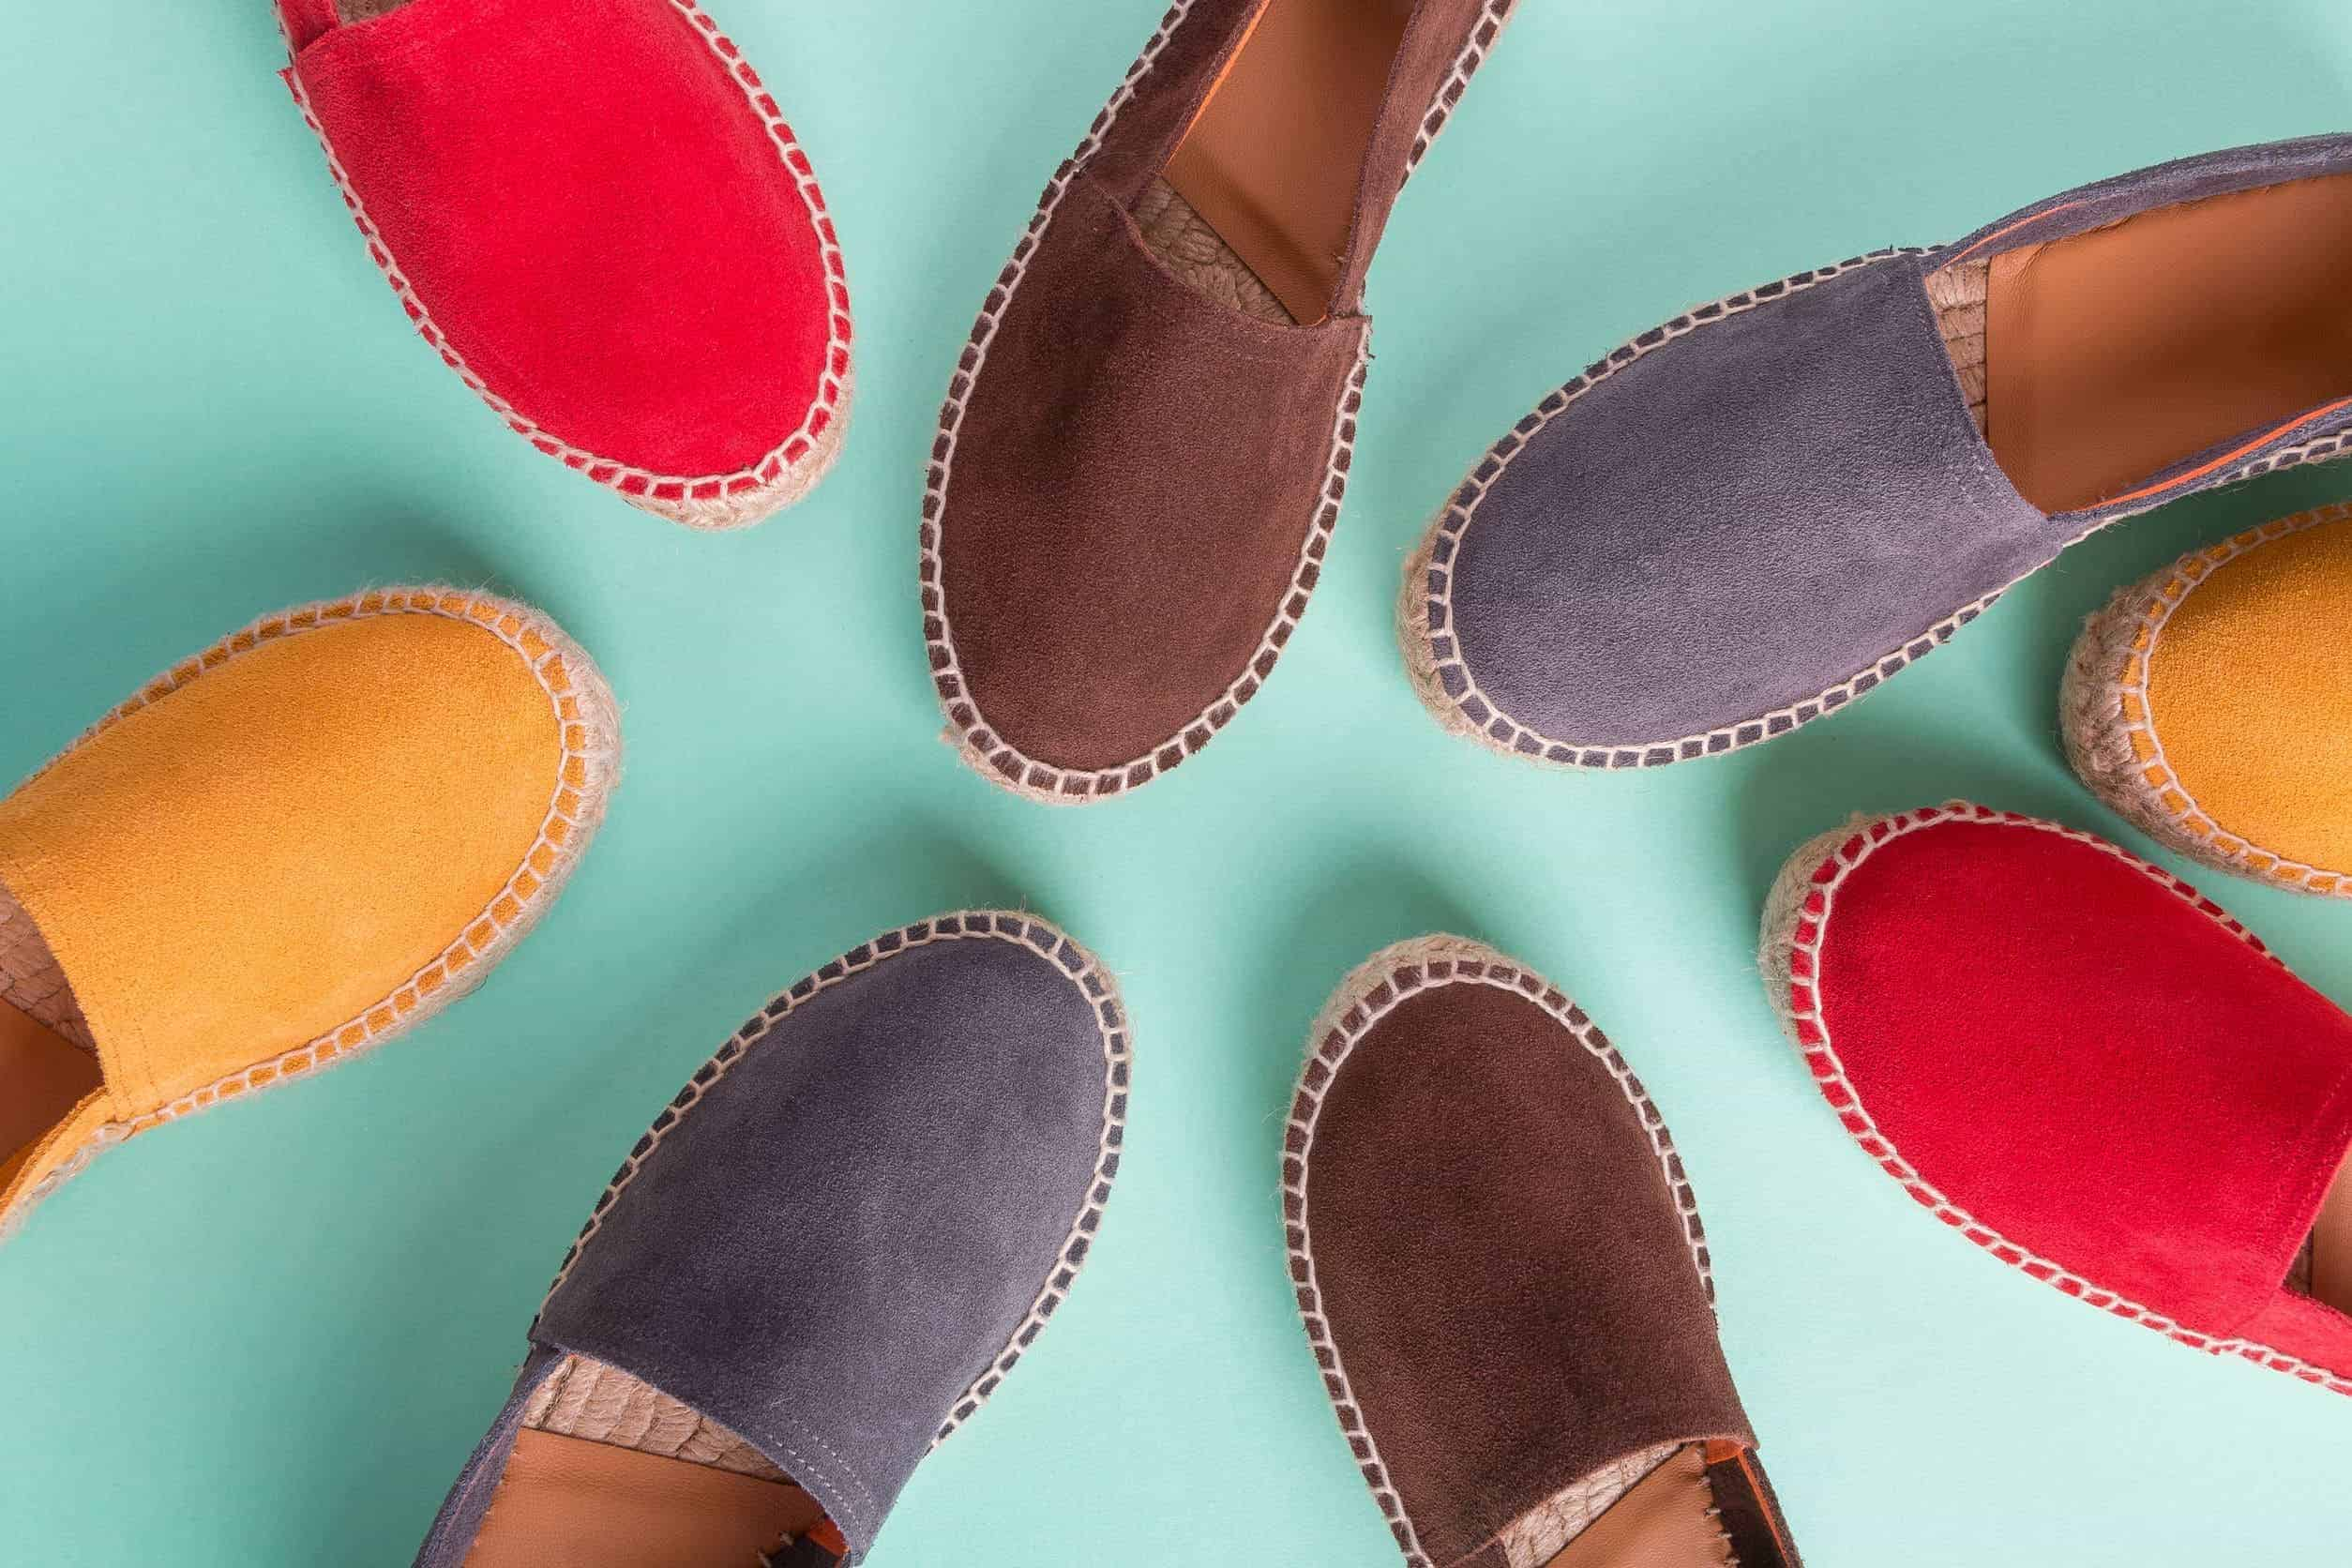 new product 792a2 491a6 Espadrilles: Test & Empfehlungen (10/19) | HOBBYLUX